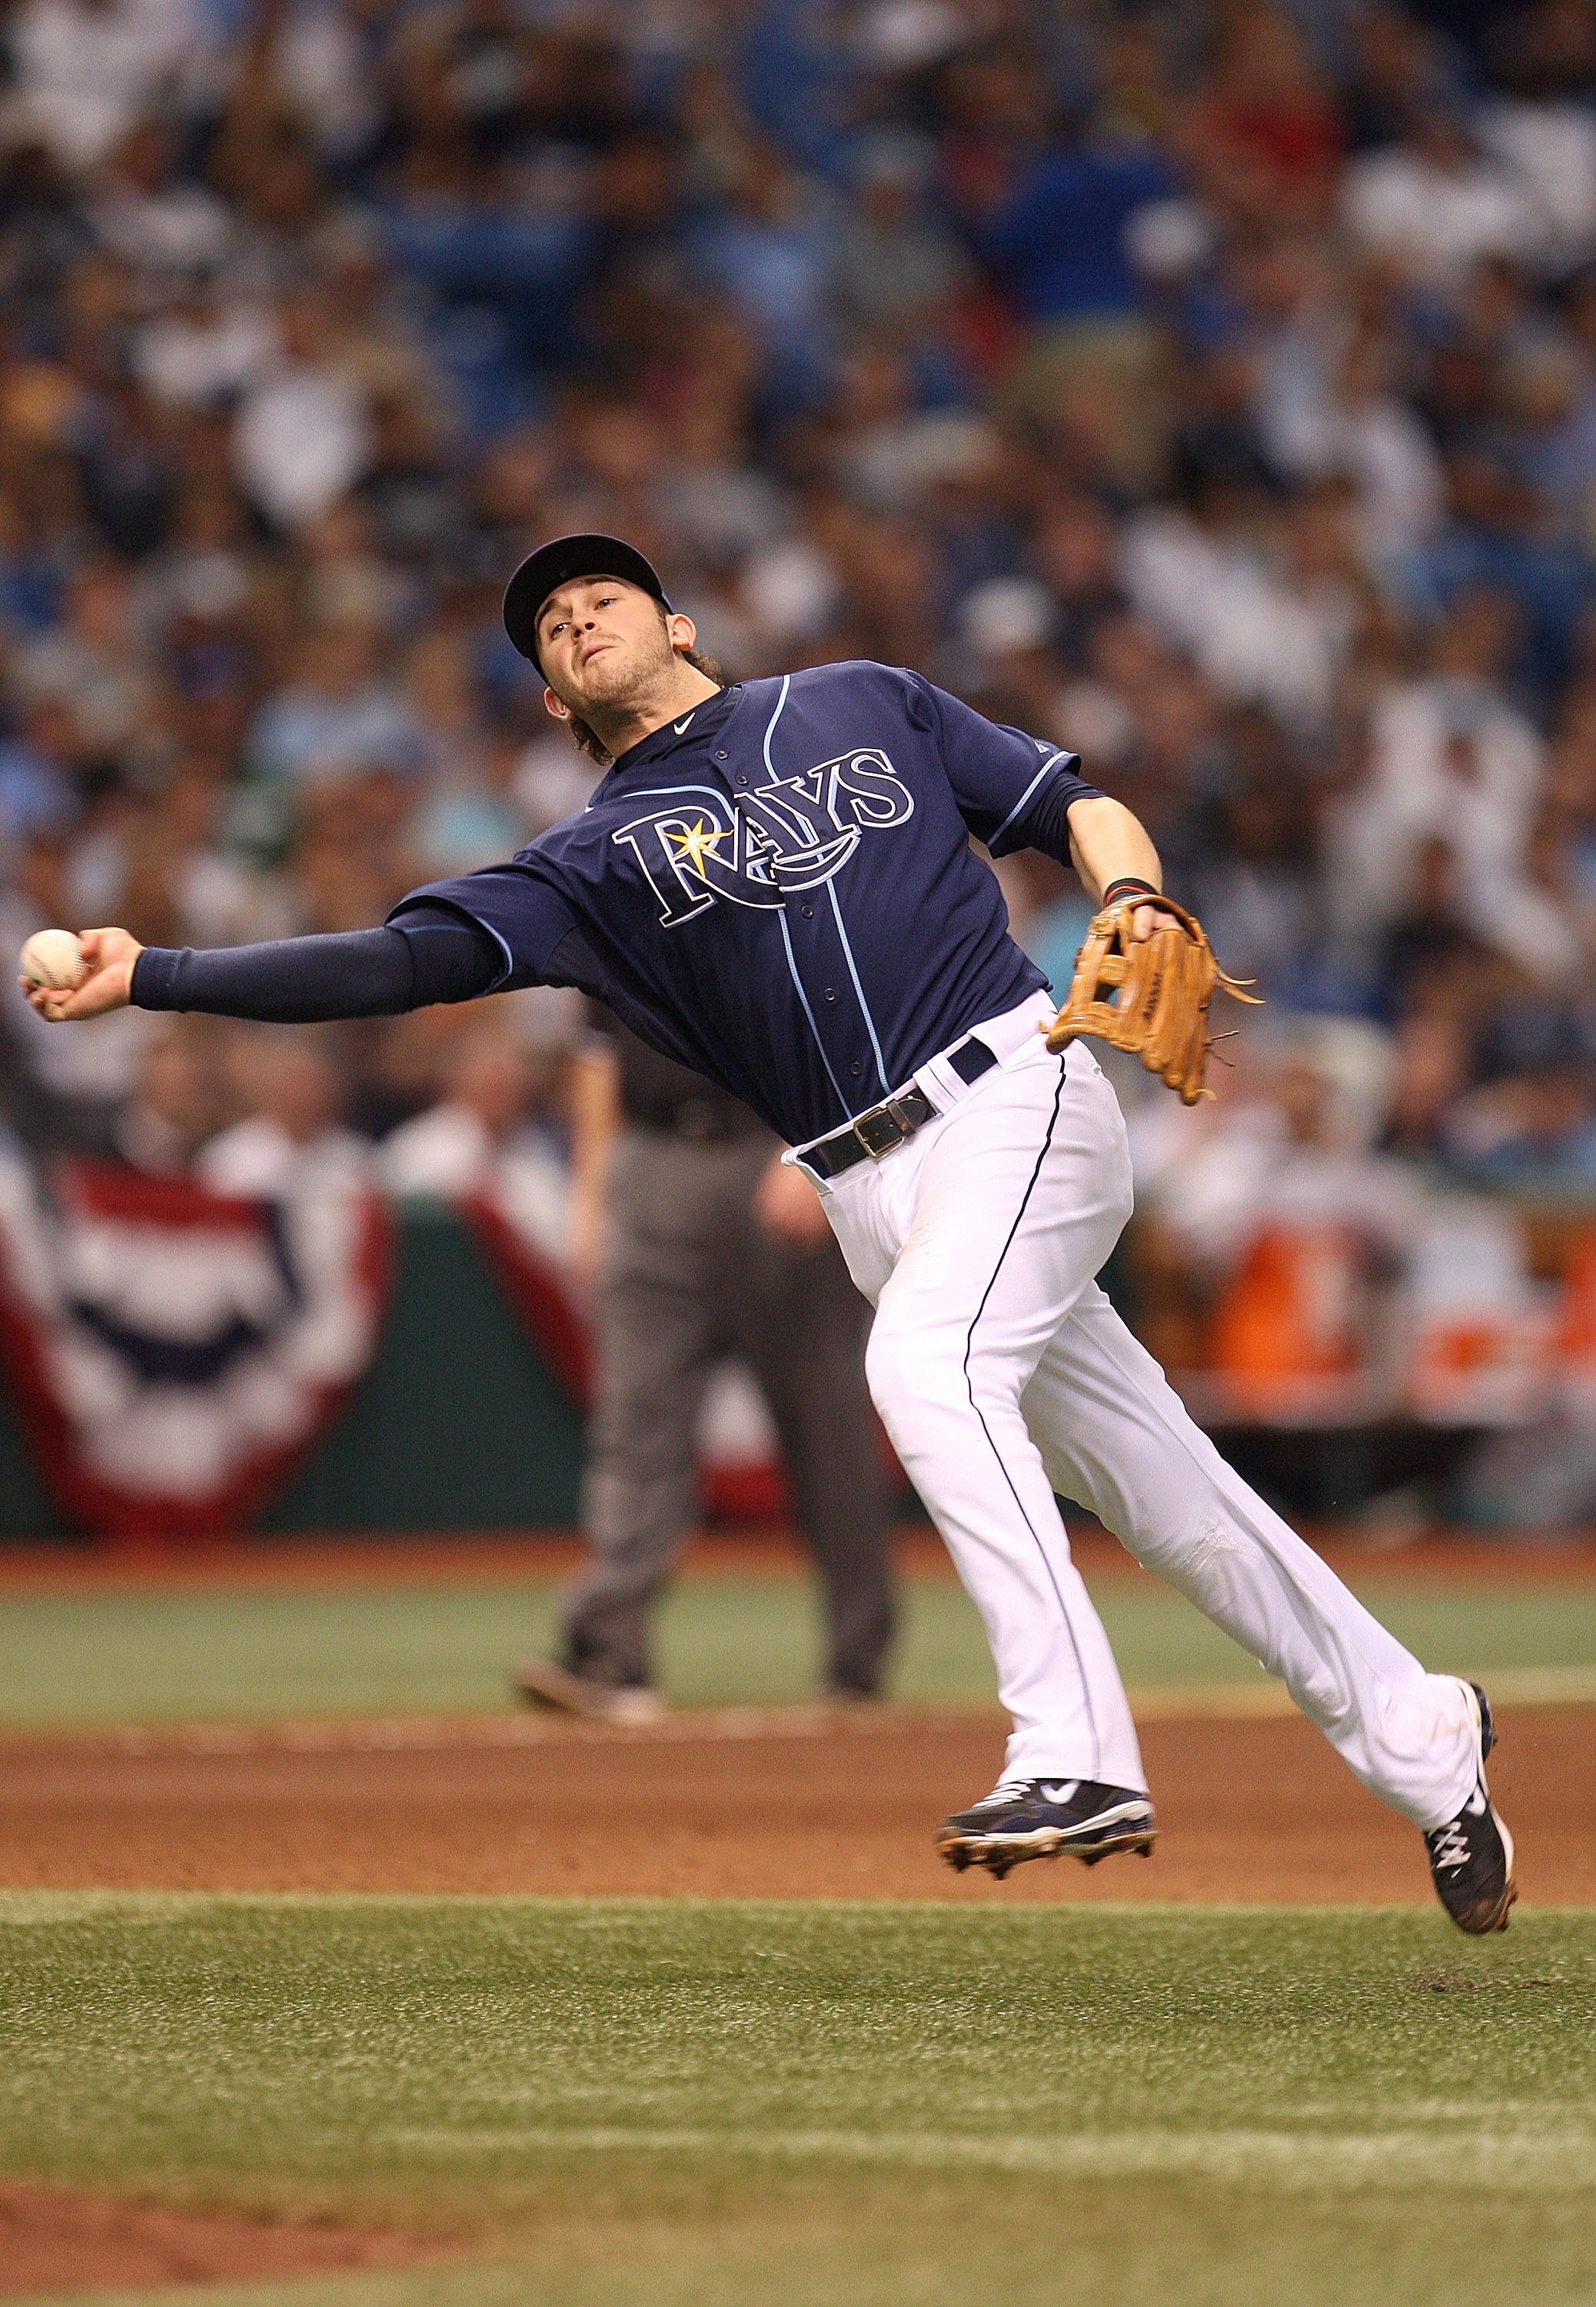 ST PETERSBURG, FL - OCTOBER 07: Evan Longoria #3 of the Tampa Bay Rays makes a throw to first during Game 2 of the ALDS against the Texas Rangers at Tropicana Field on October 7, 2010 in St. Petersburg, Florida.  (Photo by Mike Ehrmann/Getty Images)